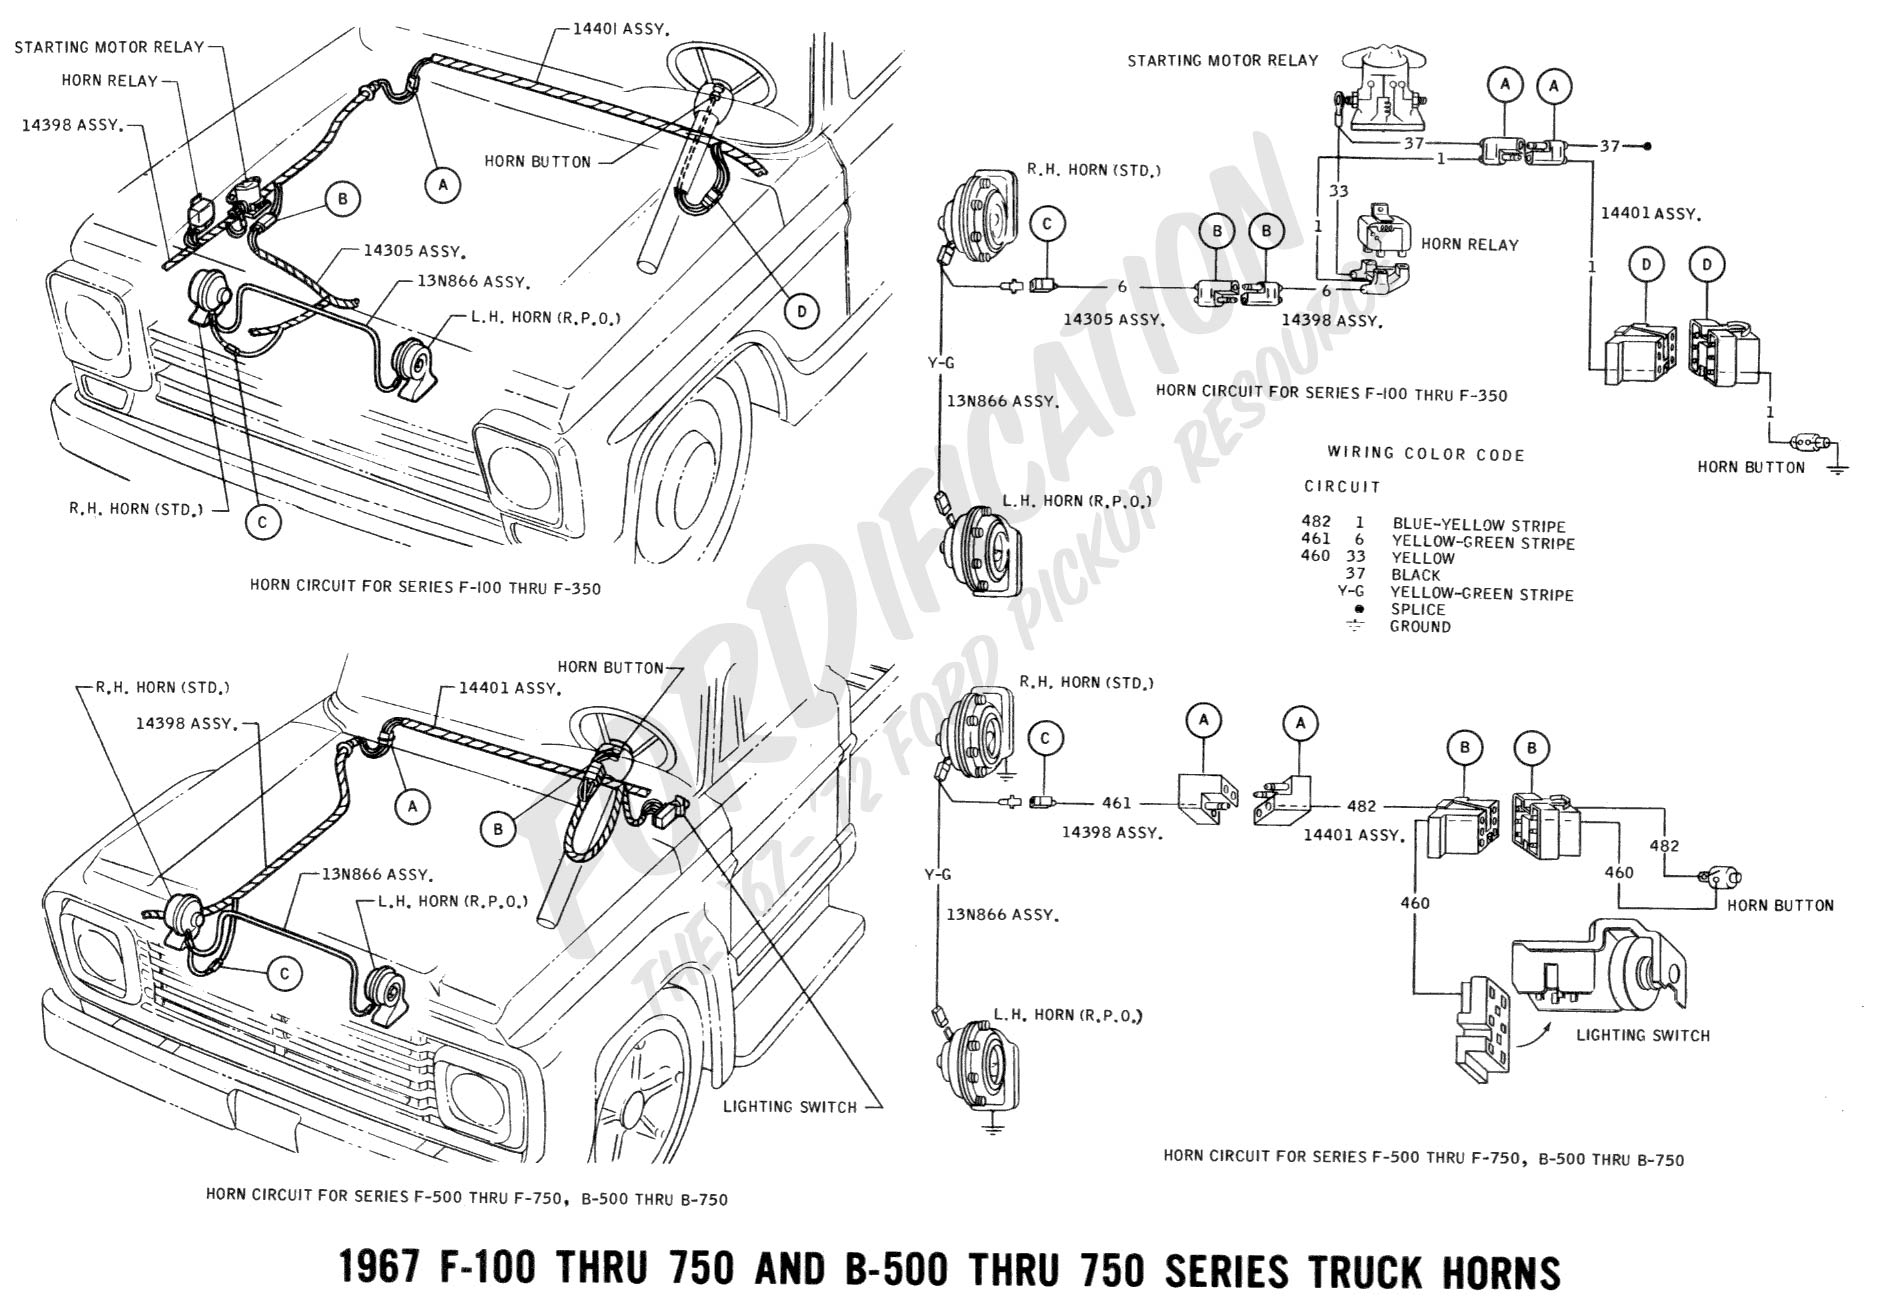 Schematics_h on Chevrolet Silverado – Fuse Box Instrument Panel